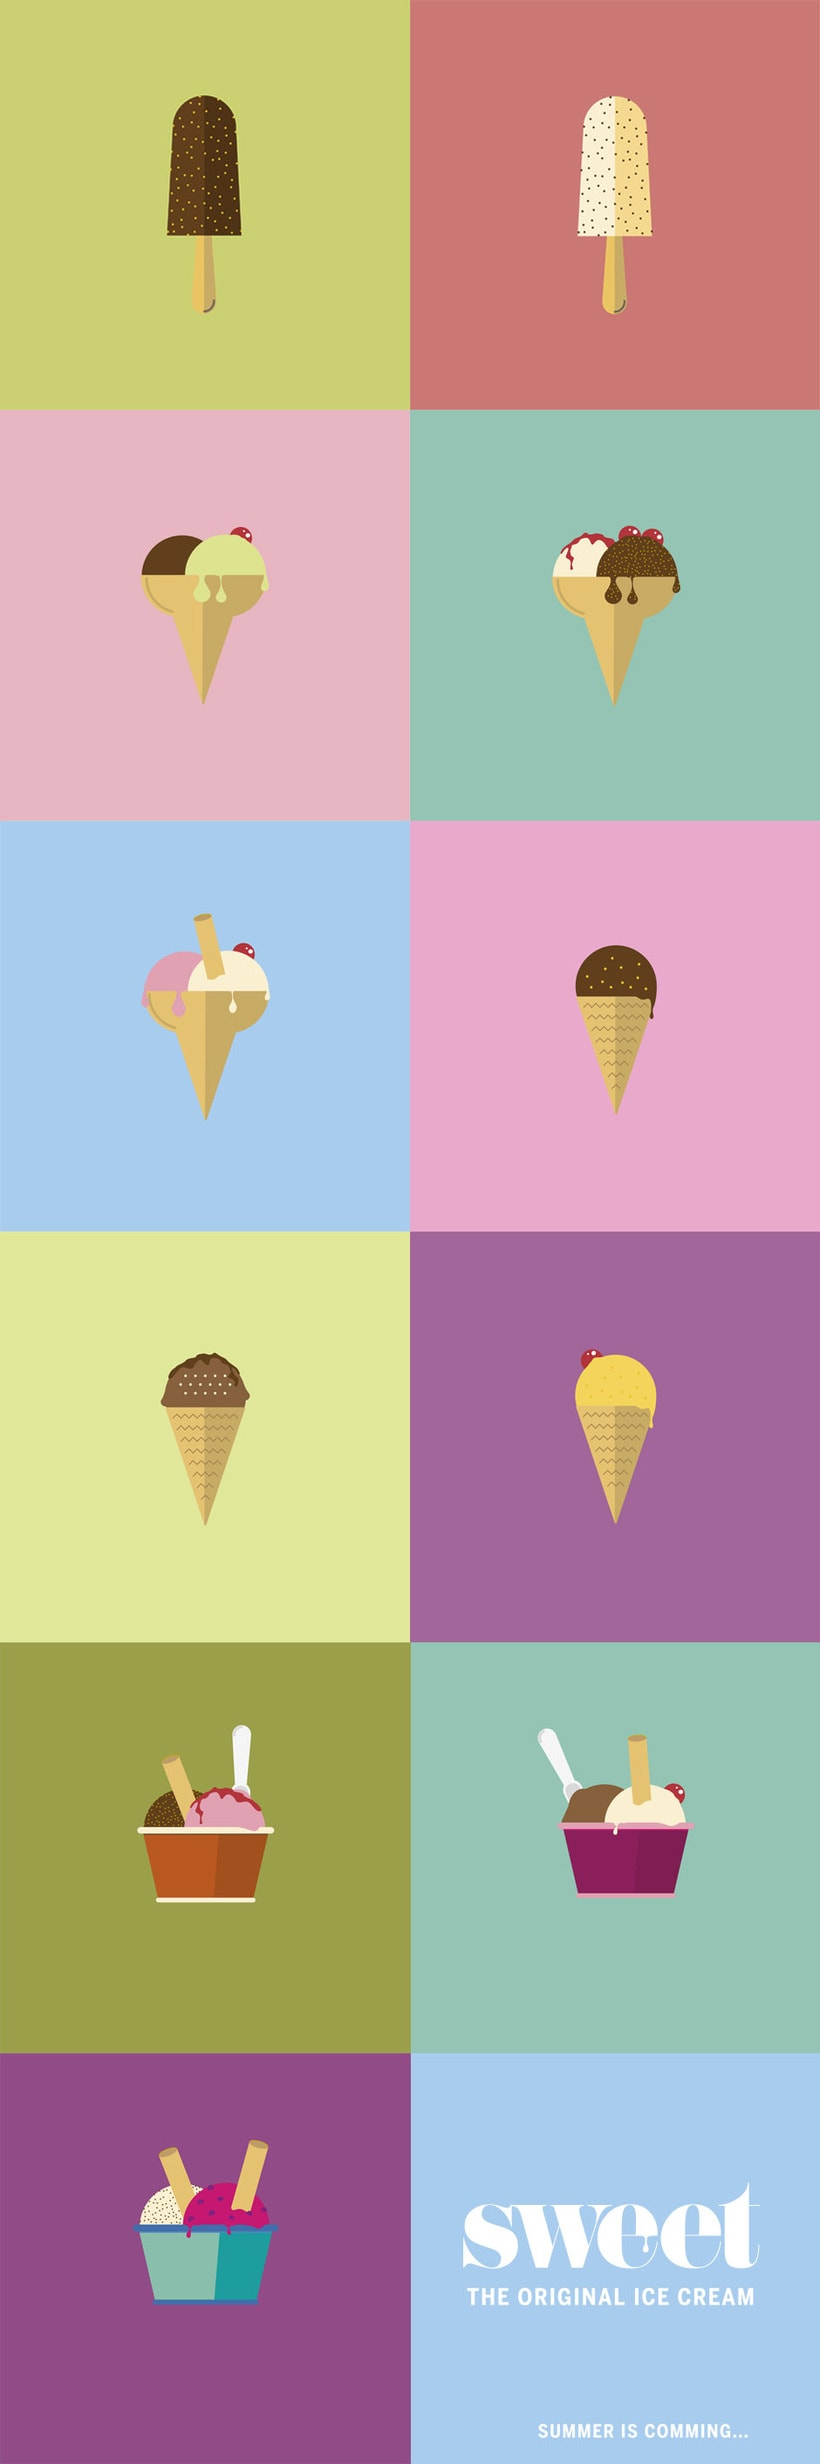 Sweet ice cream poster 2